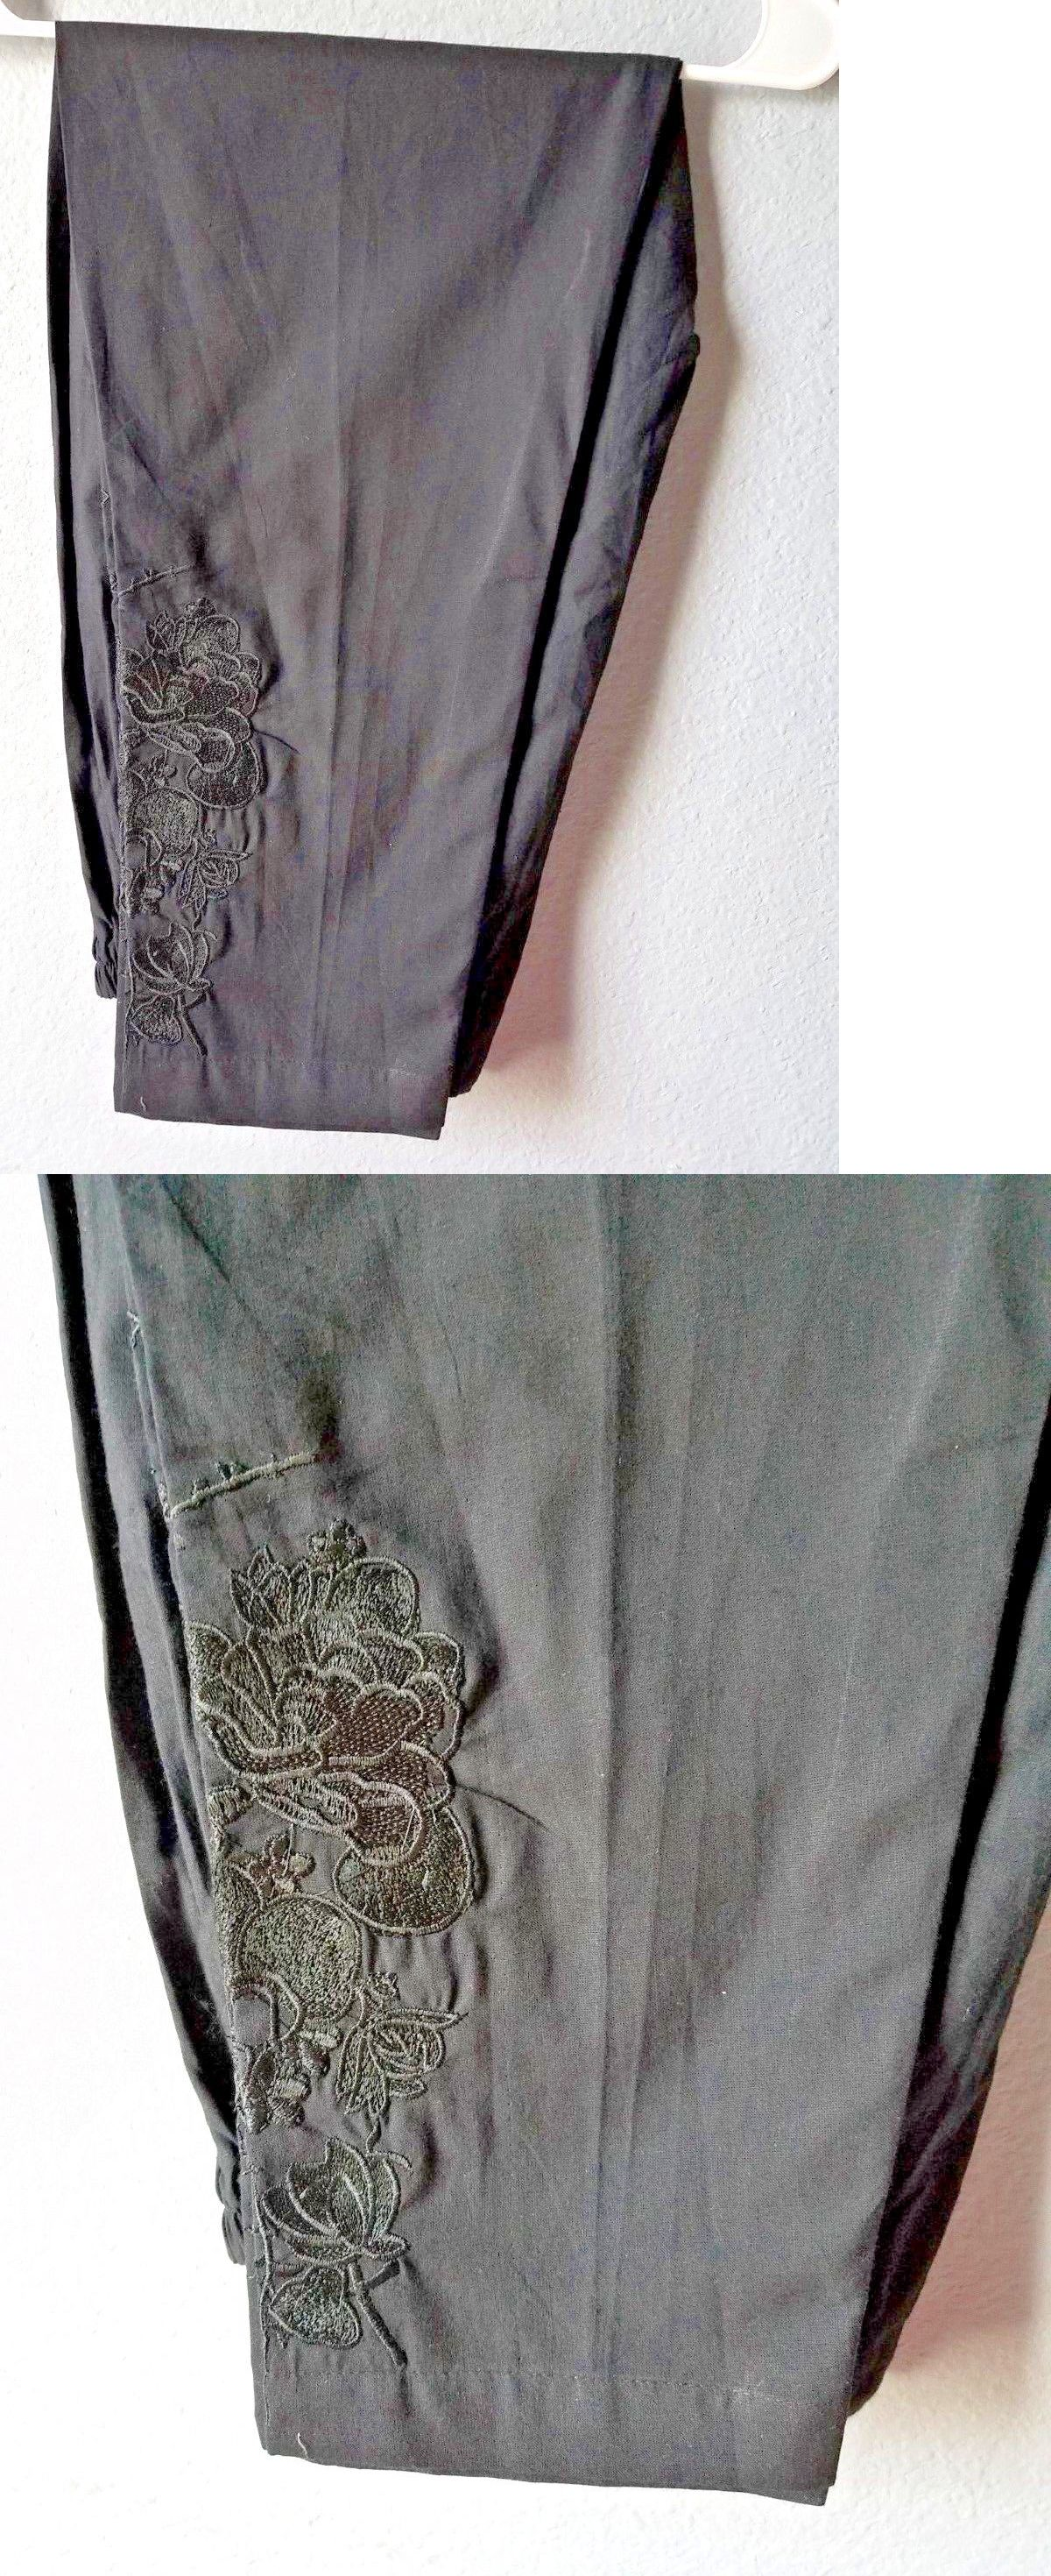 159641665c Other Ind-Pak Clothes and Accs 155251: Latest Ladies Pakistani Fancy  Embroidered Cigarette Pants Black Nwt -> BUY IT NOW ONLY: $23 on #eBay  #other #clothes ...